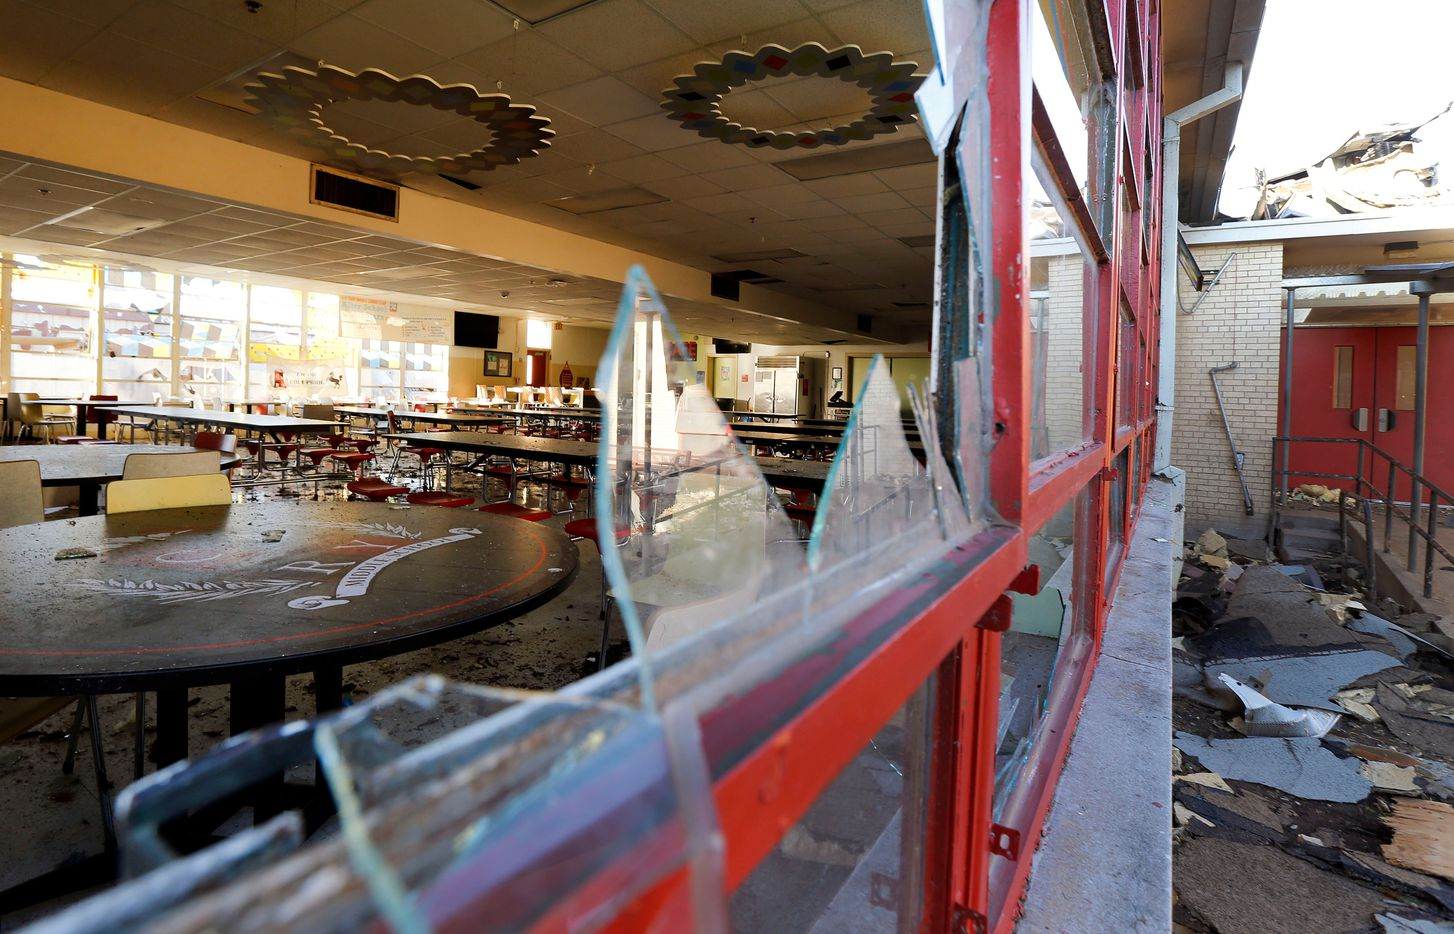 Tornado damage in the cafeteria of Cary Jr. High School at Killon Dr. and Hedgeway Dr. in Dallas, Monday, October 21, 2019. (Tom Fox/The Dallas Morning News)